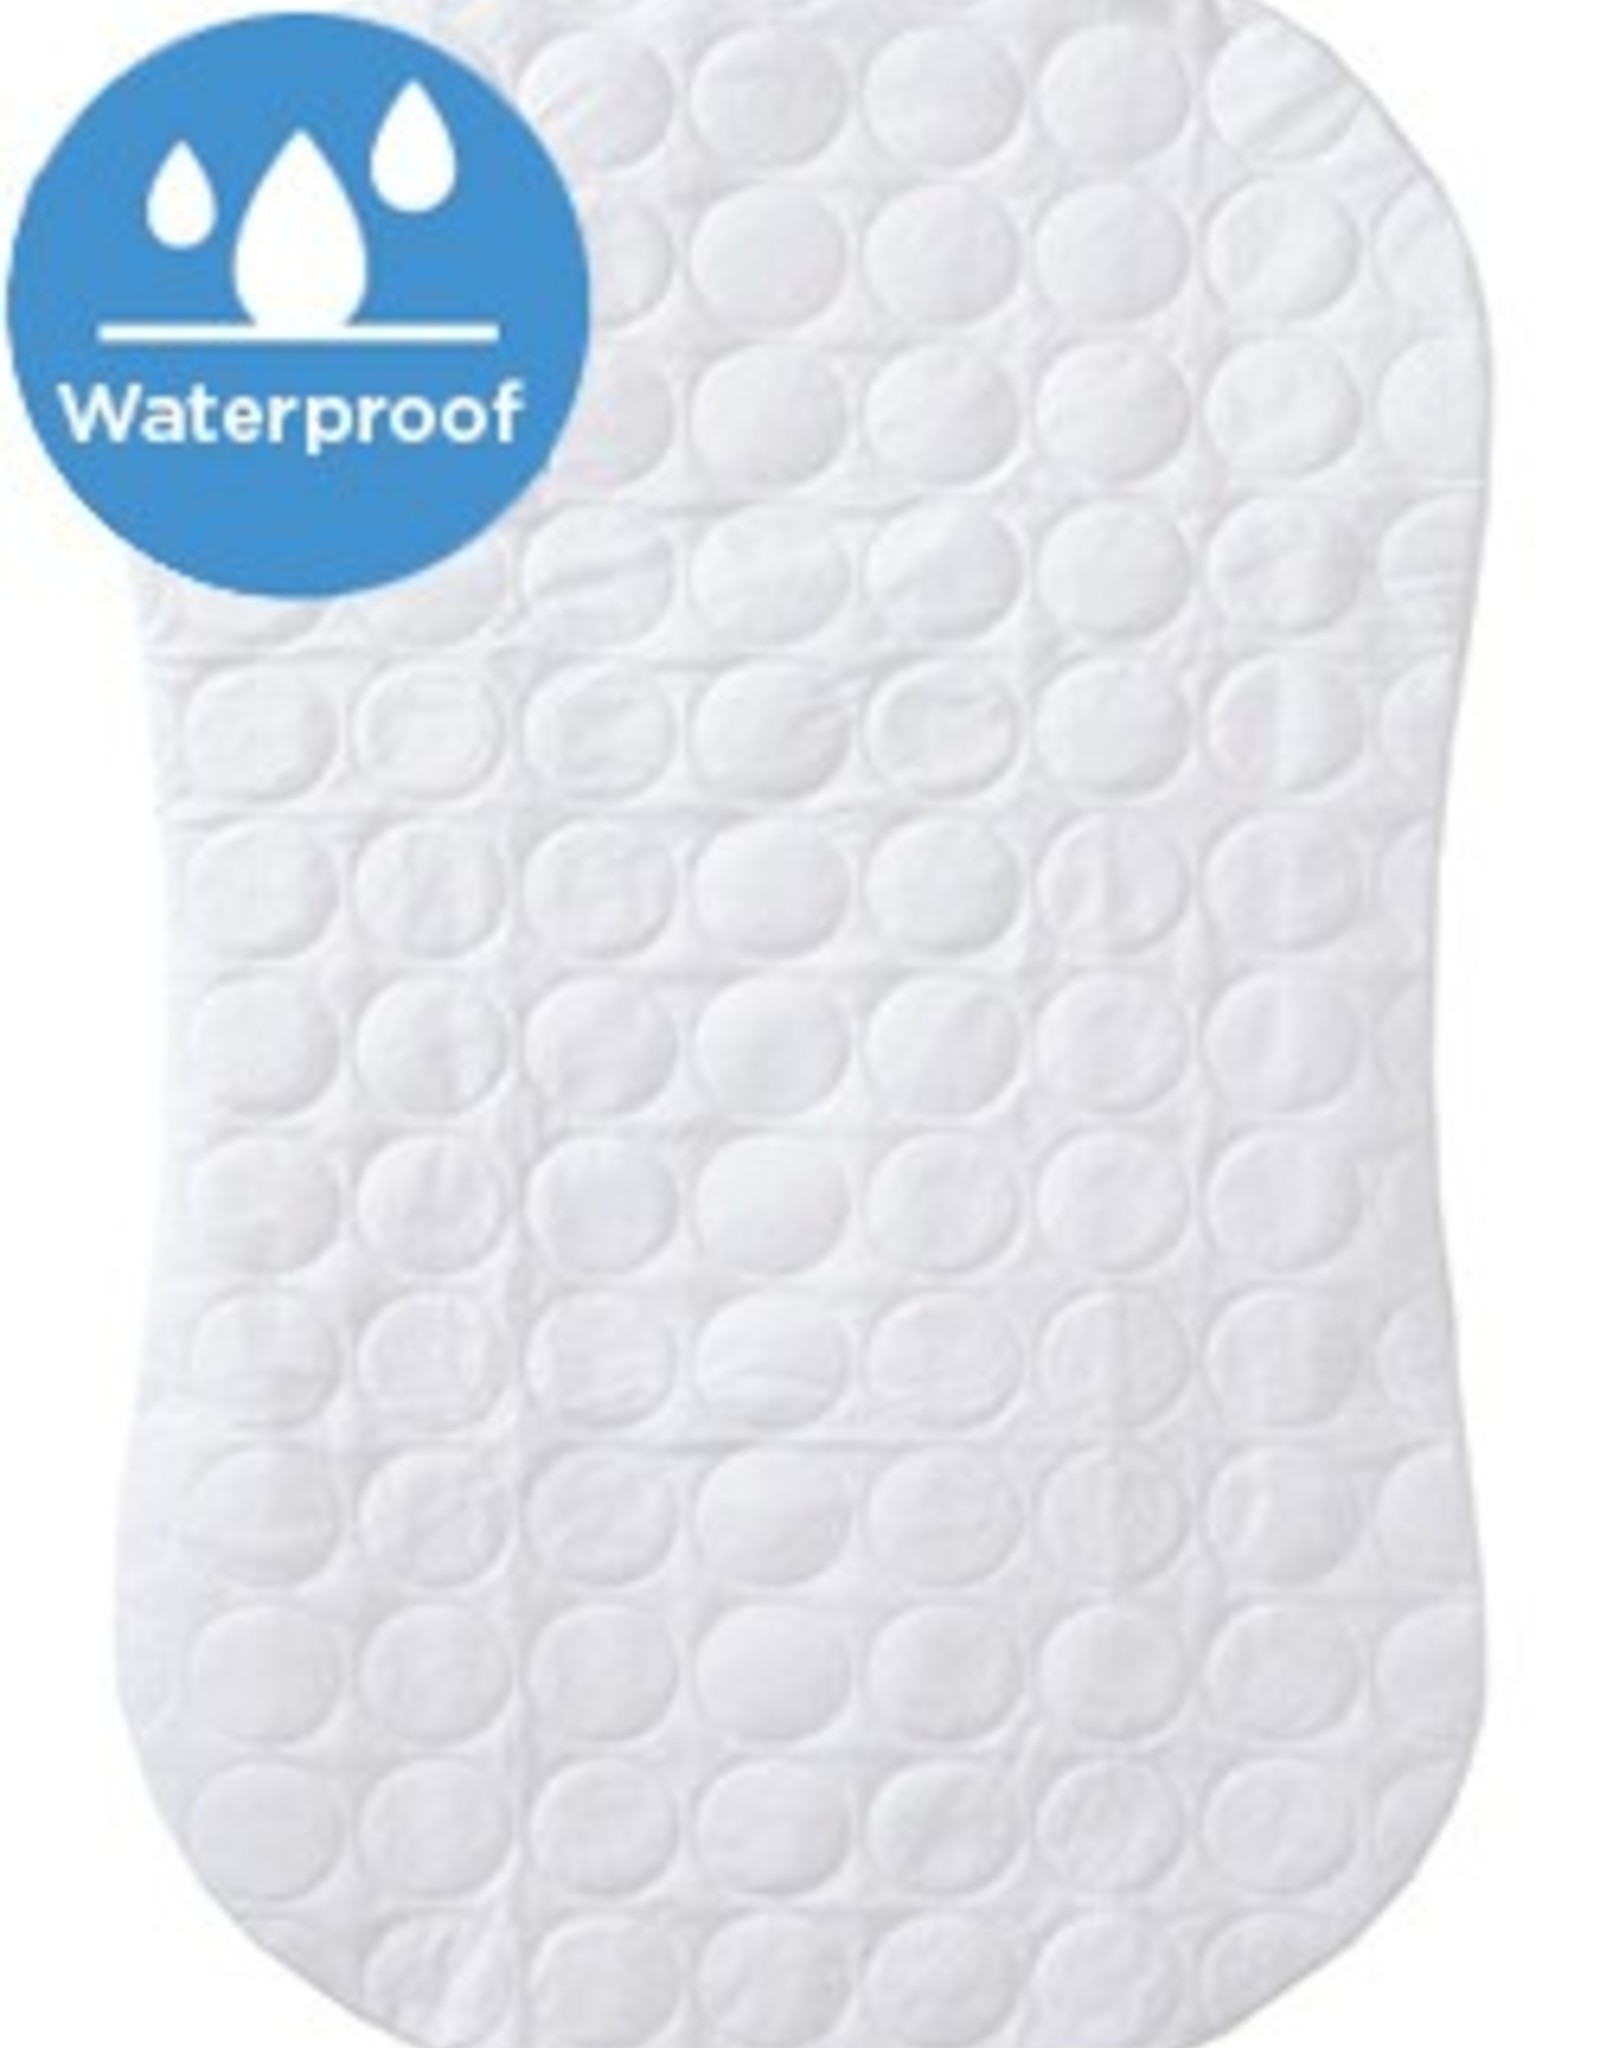 Halo Halo Bassinet Waterproof Mattress Pad